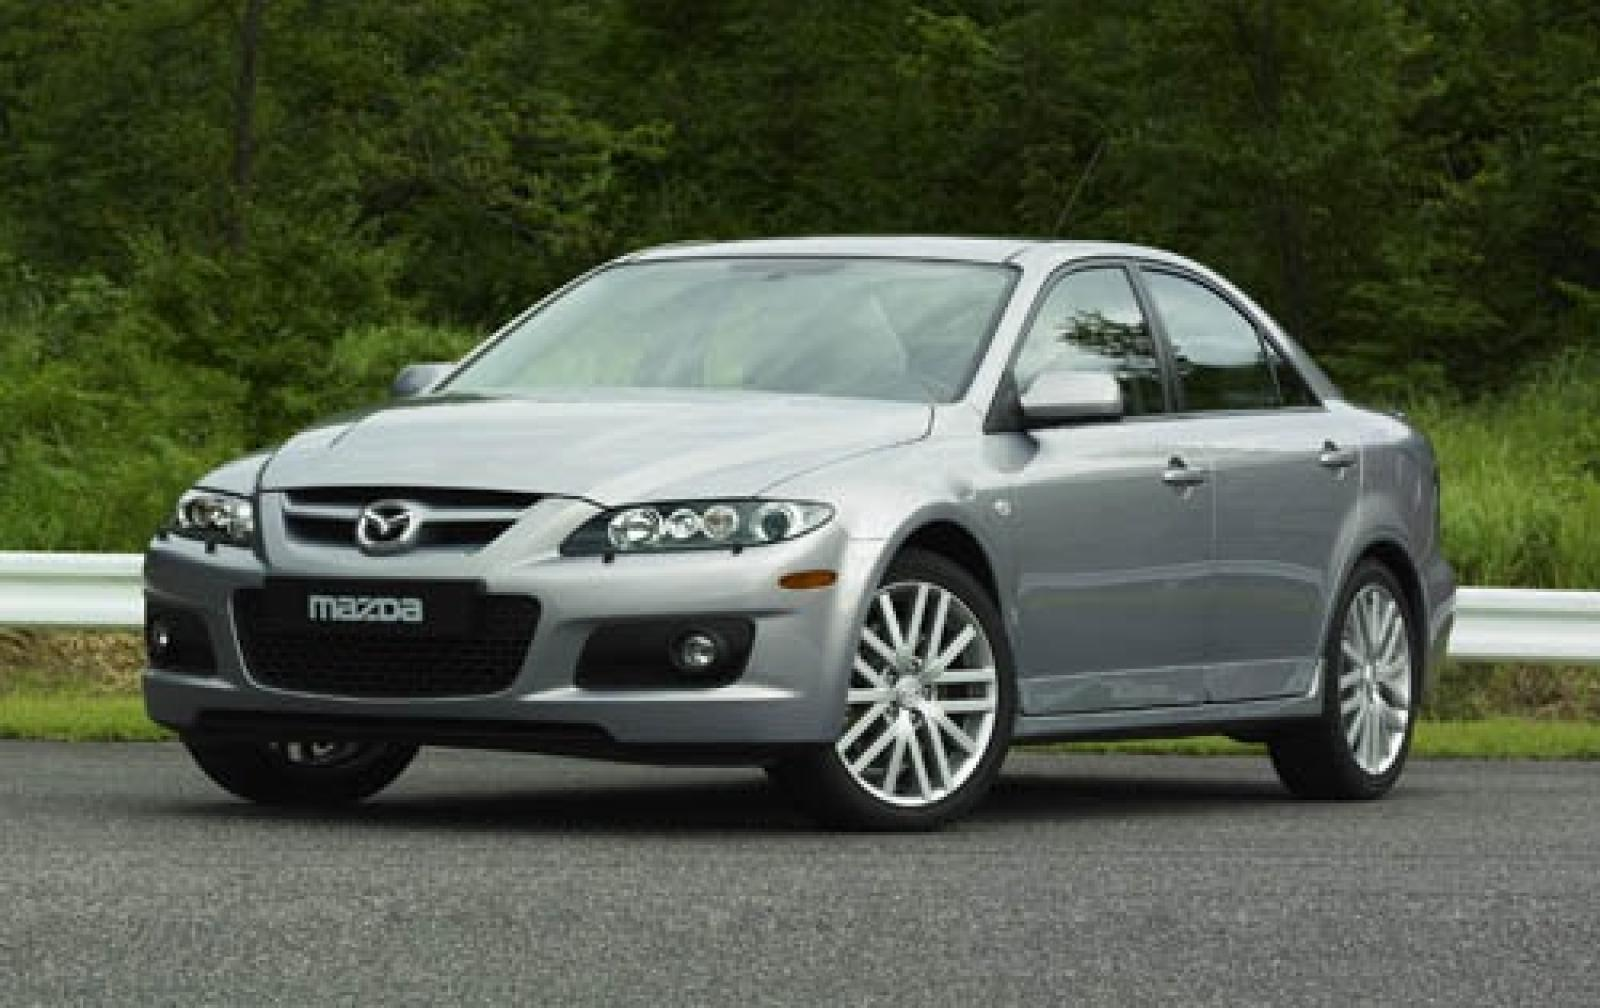 2006 mazda mazdaspeed mazda6 information and photos zombiedrive. Black Bedroom Furniture Sets. Home Design Ideas